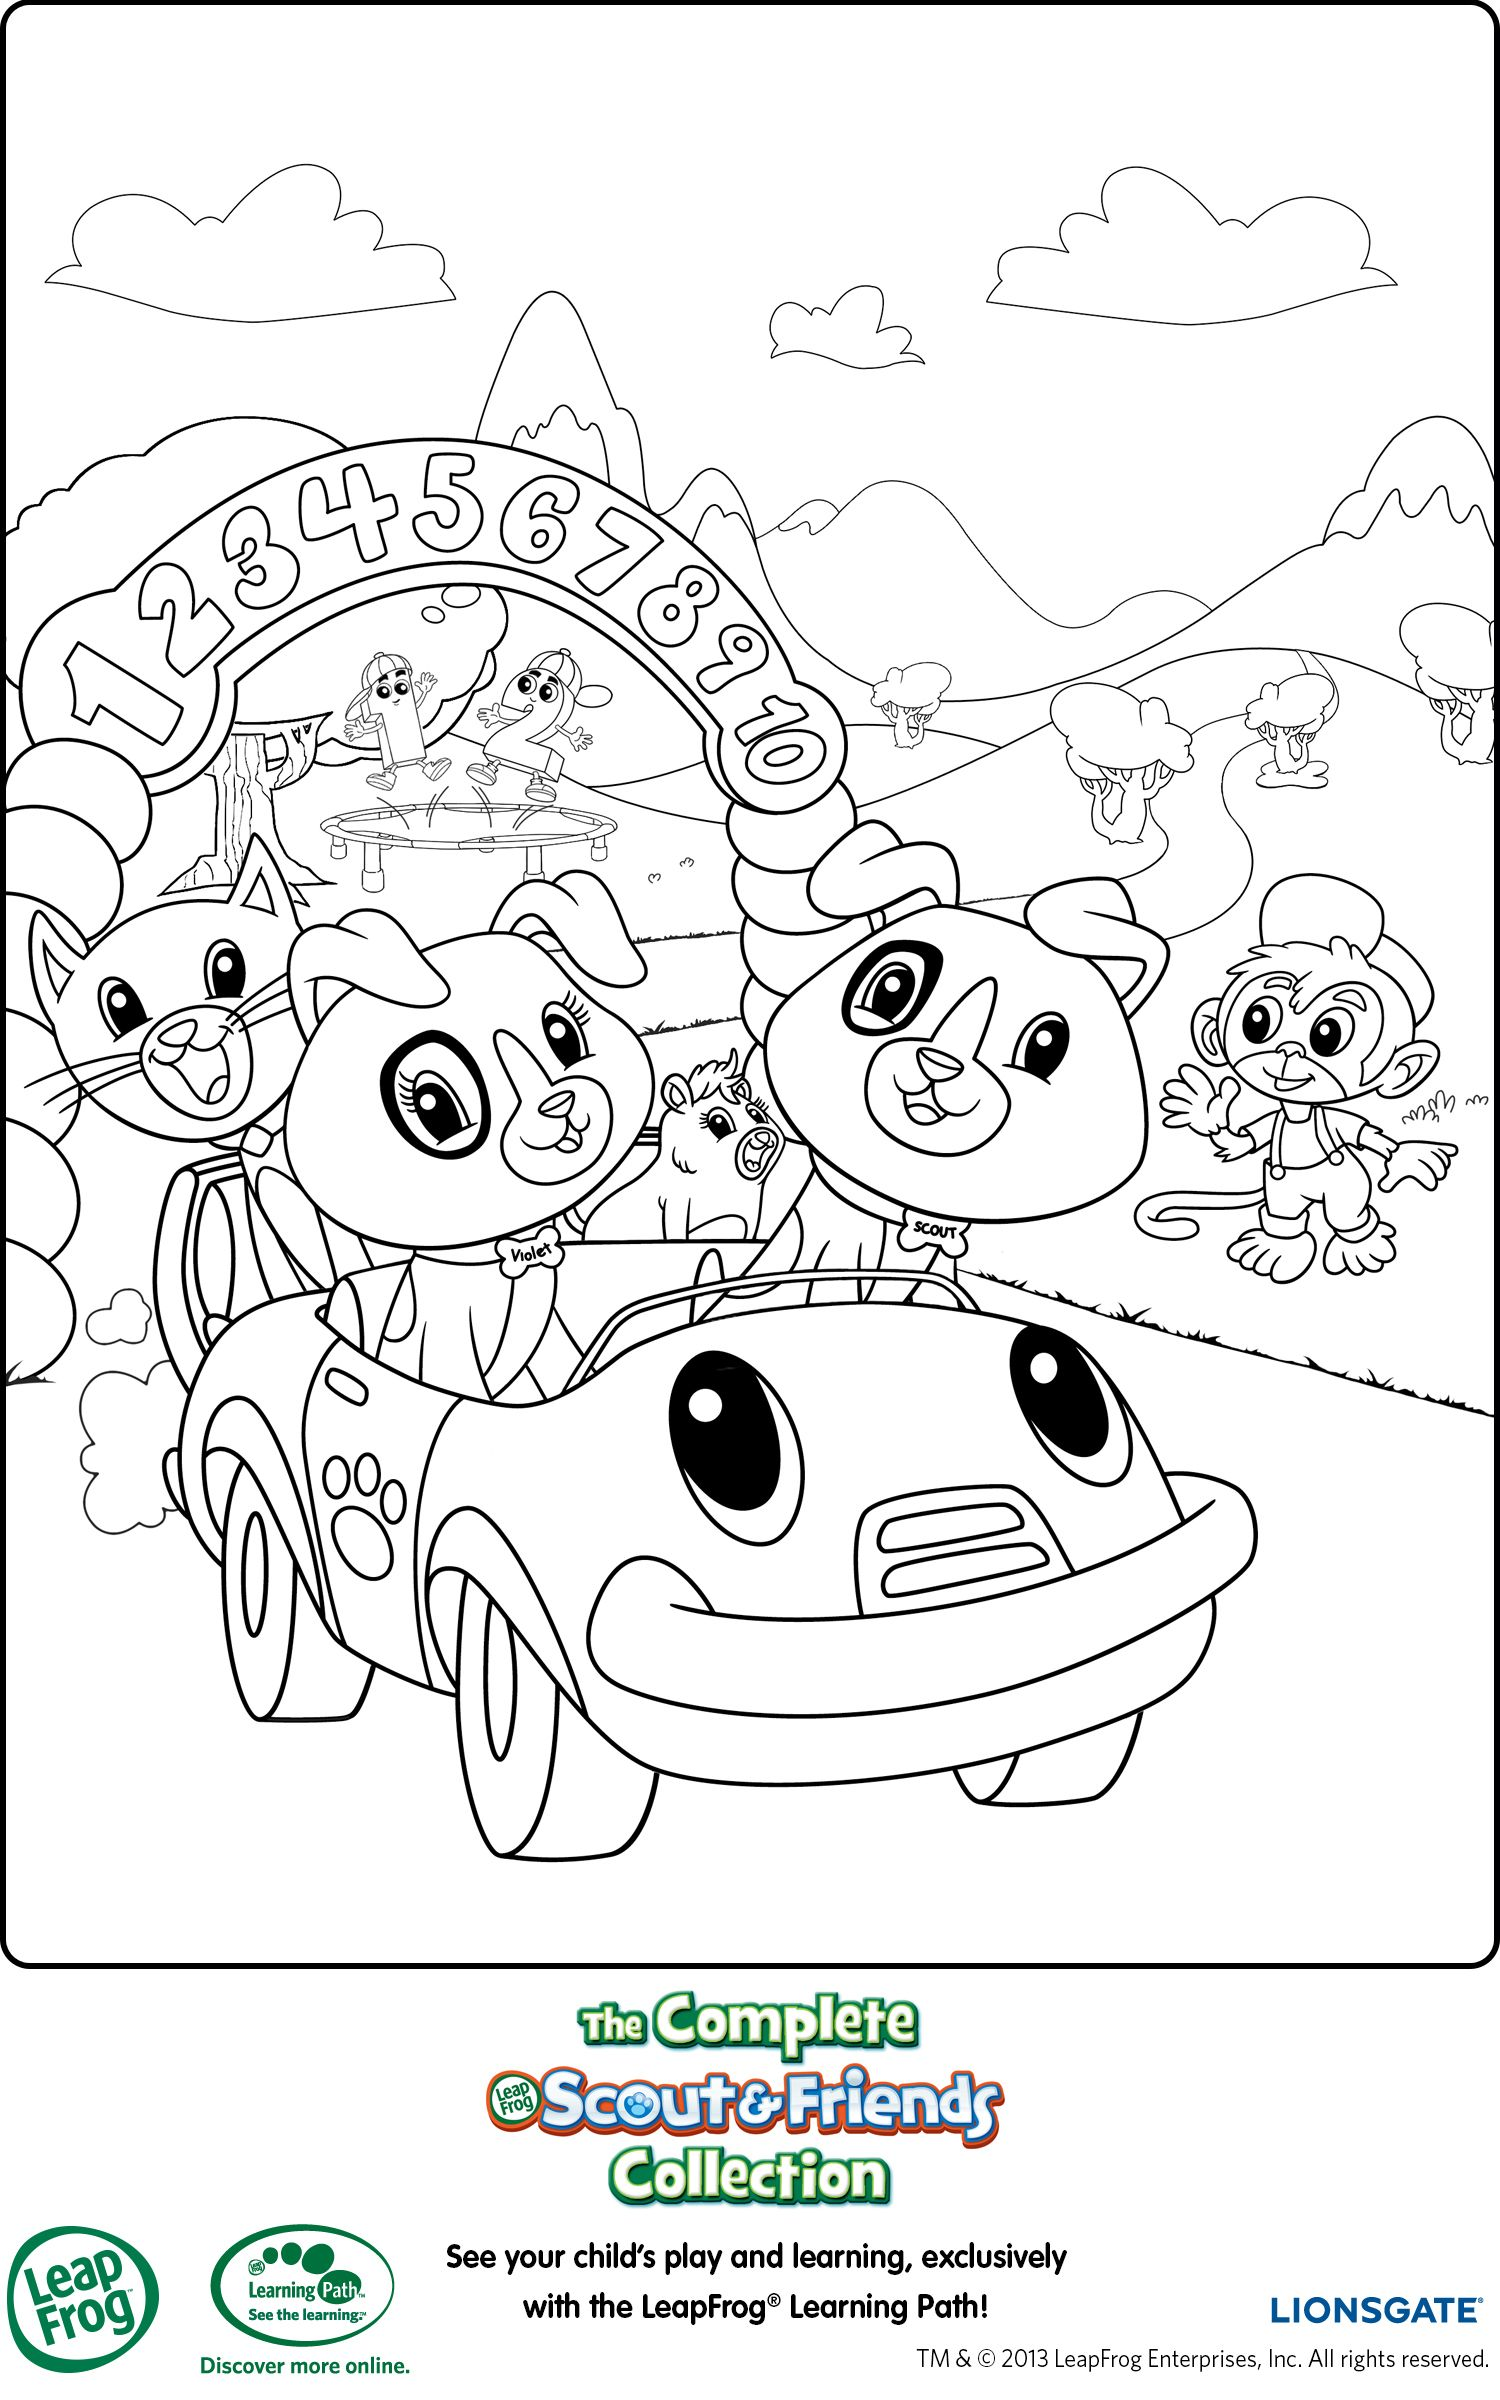 leapfrog printable coloring page - Leap Frog Coloring Pages